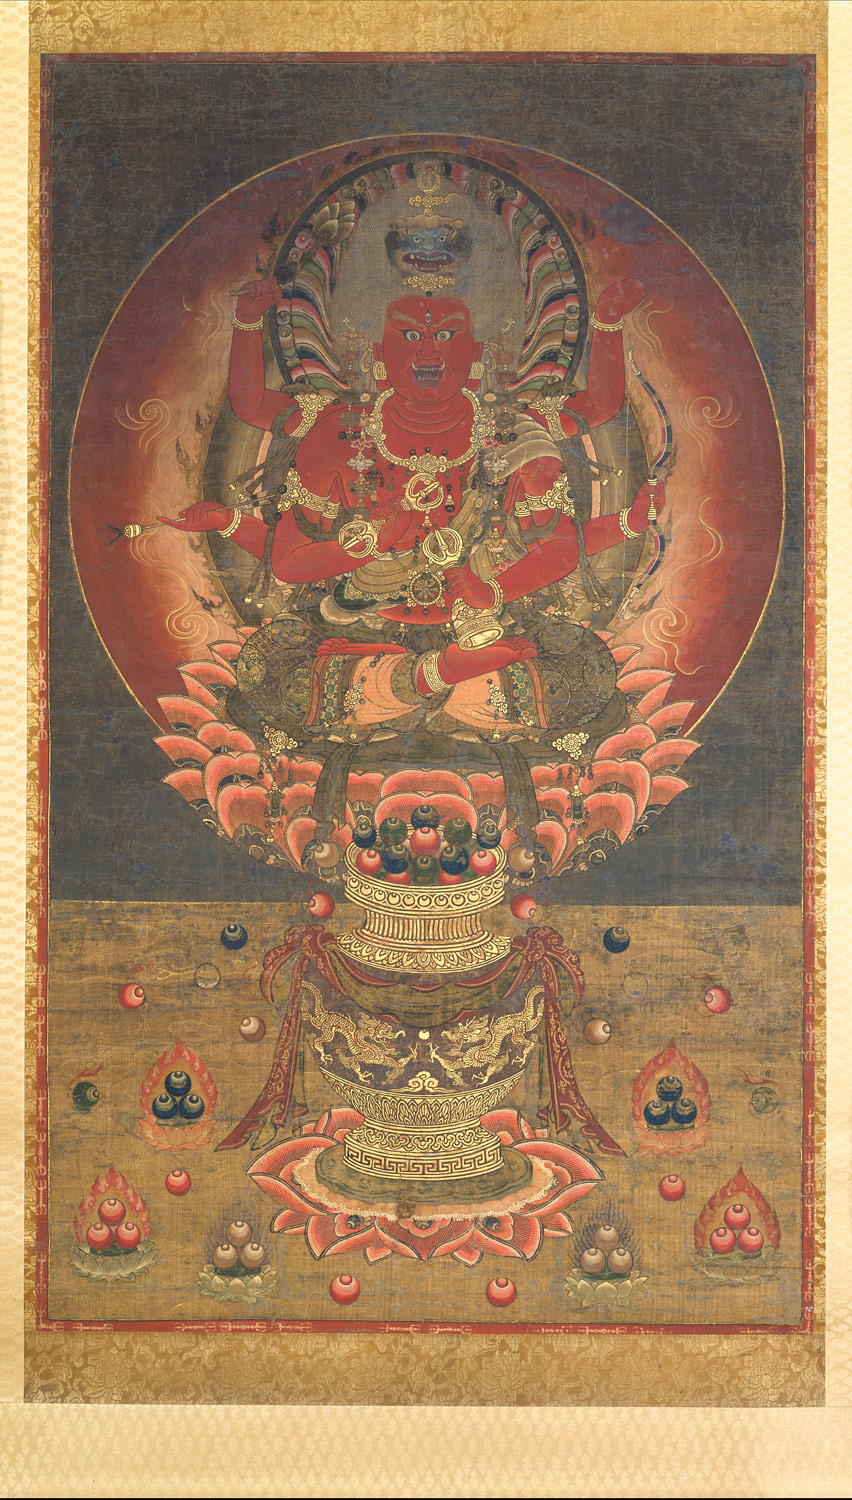 Kings Of Brightness In Japanese Esoteric Buddhist Art